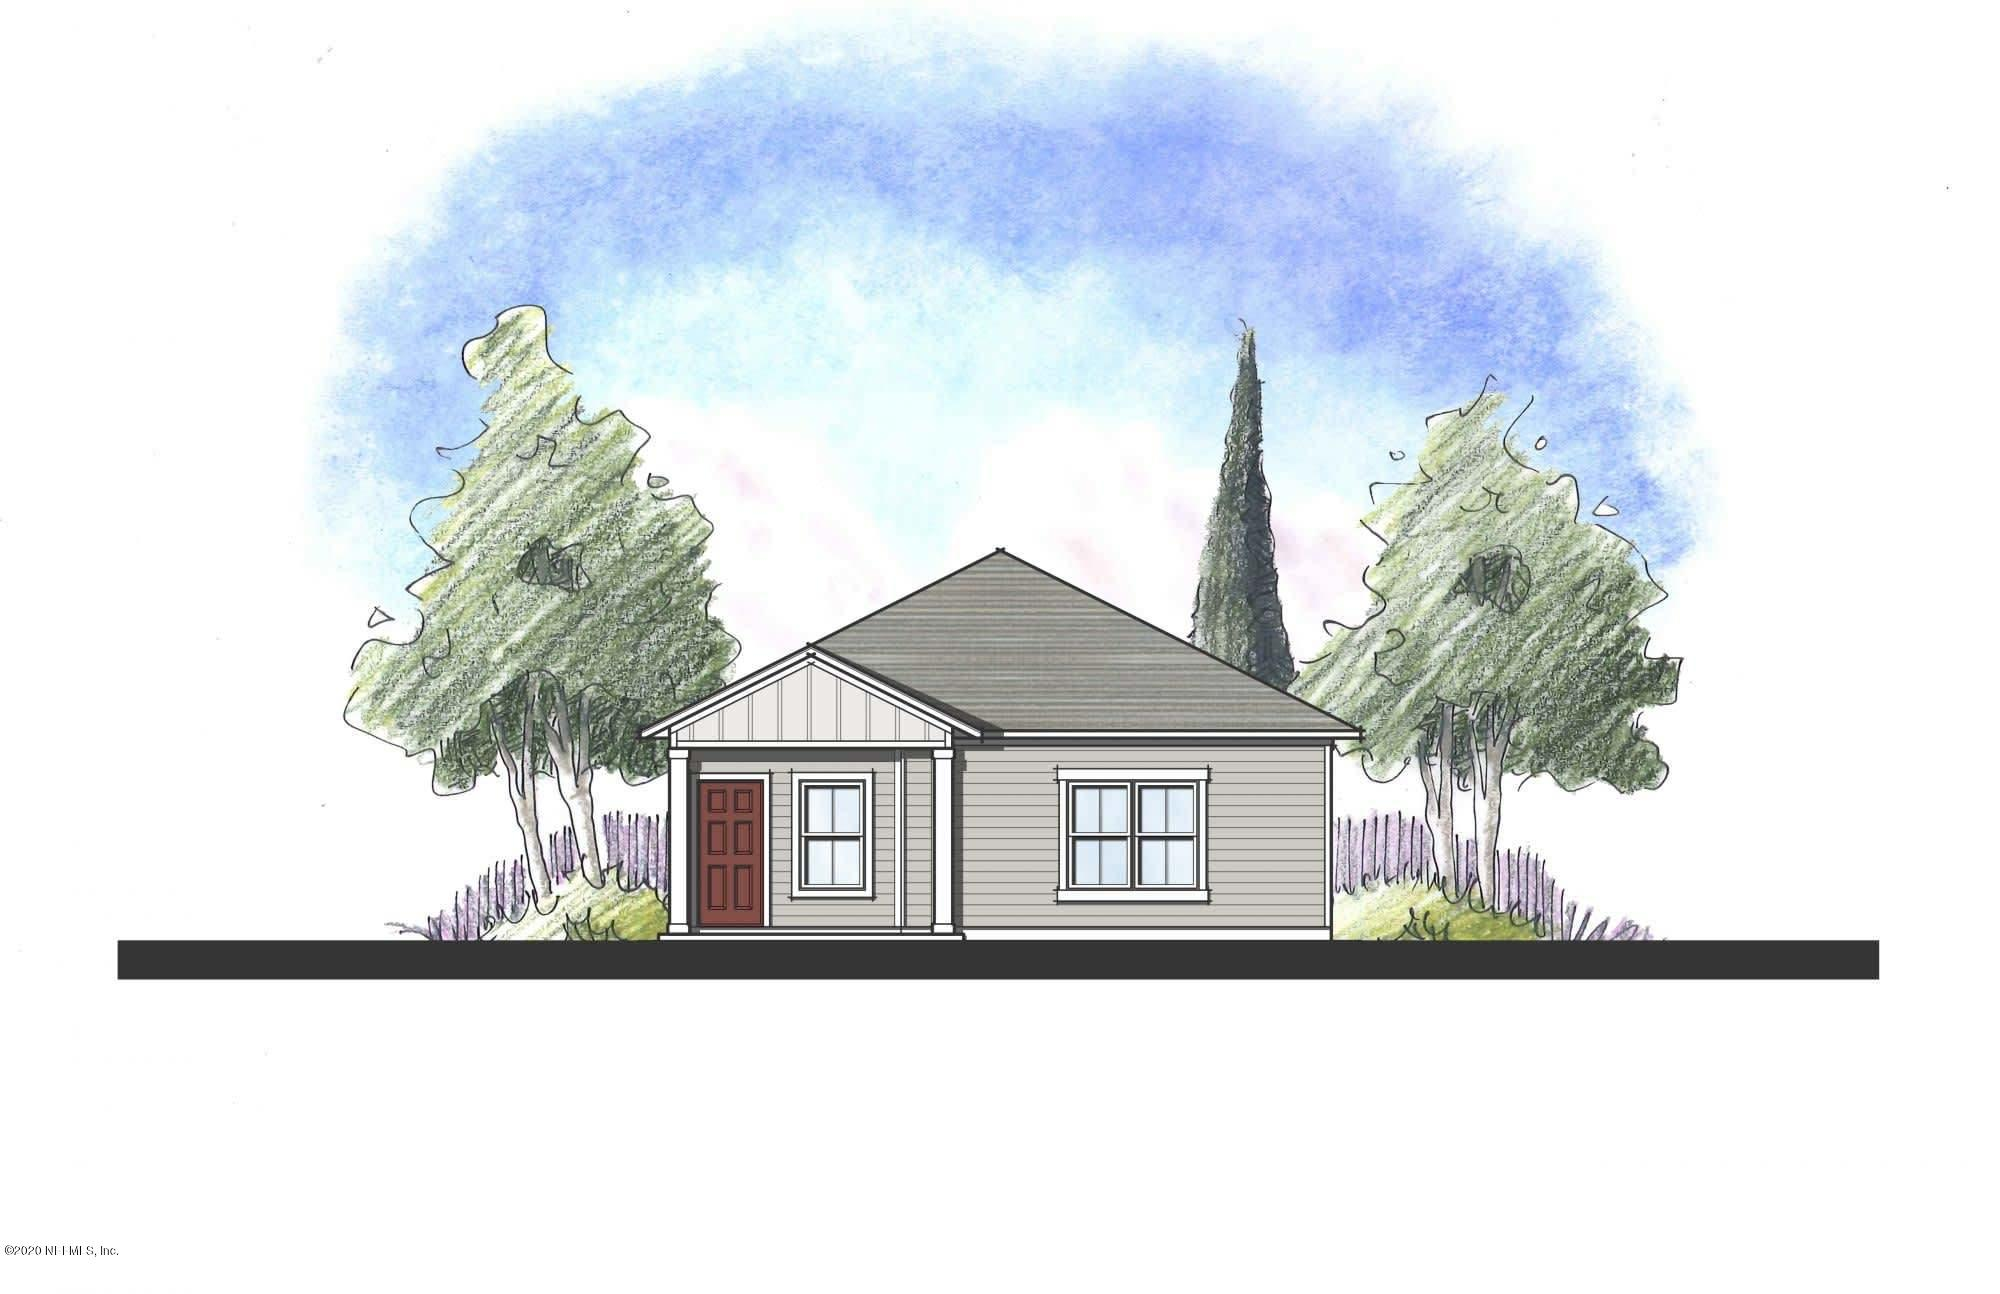 270 DAYDREAM, YULEE, FLORIDA 32097, 3 Bedrooms Bedrooms, ,2 BathroomsBathrooms,Residential,For sale,DAYDREAM,1080615